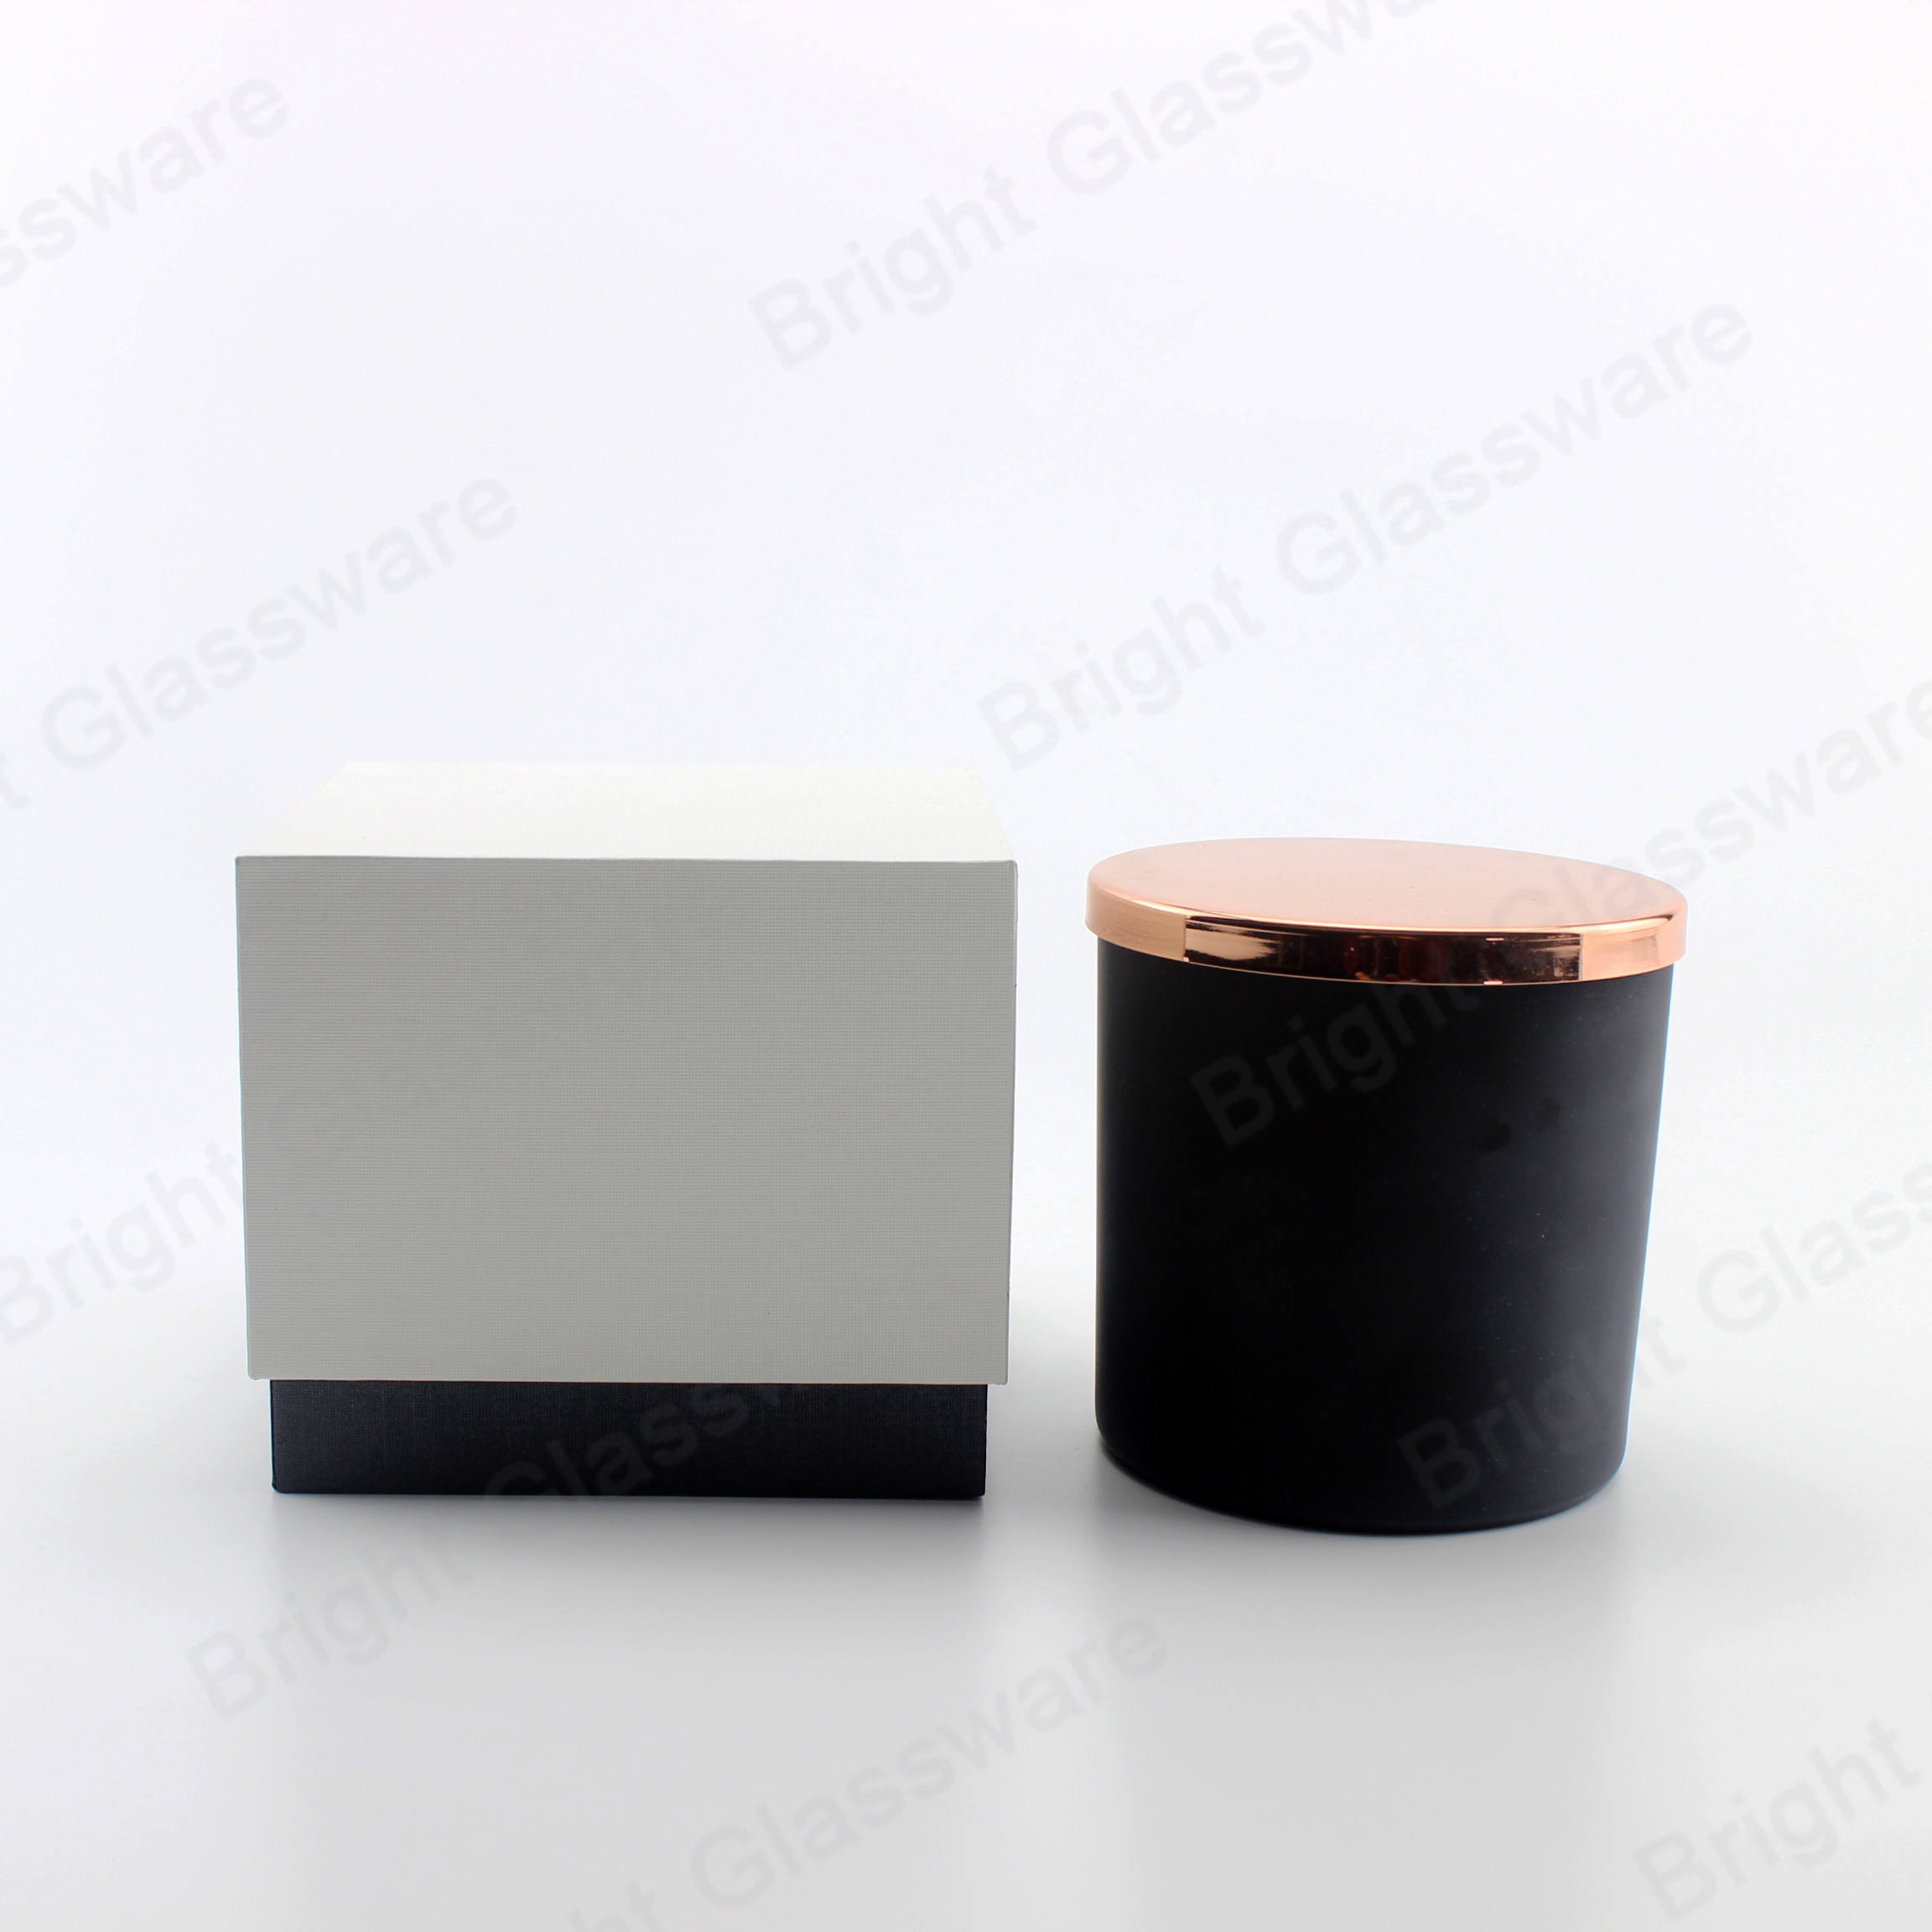 Customized luxury empty matte black glass candle jar with rose gold metal lid and gift box